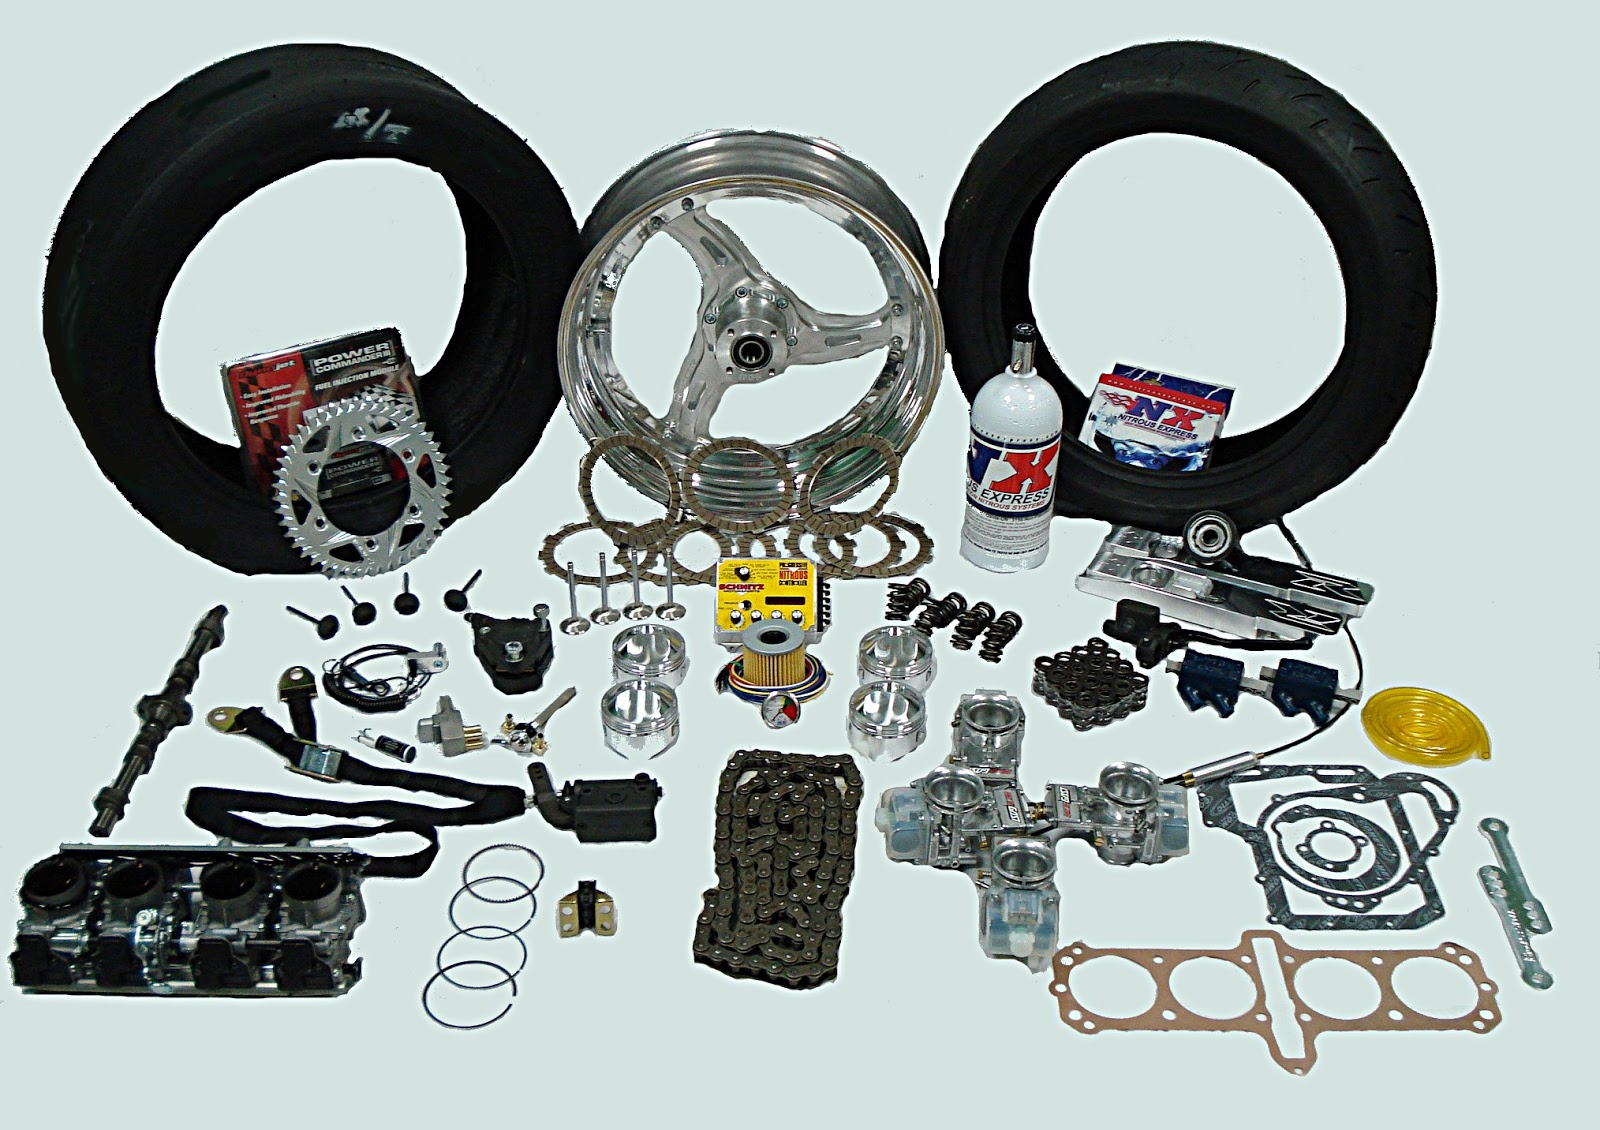 Motorcycle Performance Modification in 4 steps ( Harley-Davidson® motorcycles ) by  S&S® You don't have to settle for stock. Owners of Harley-Davidson® motorcycles